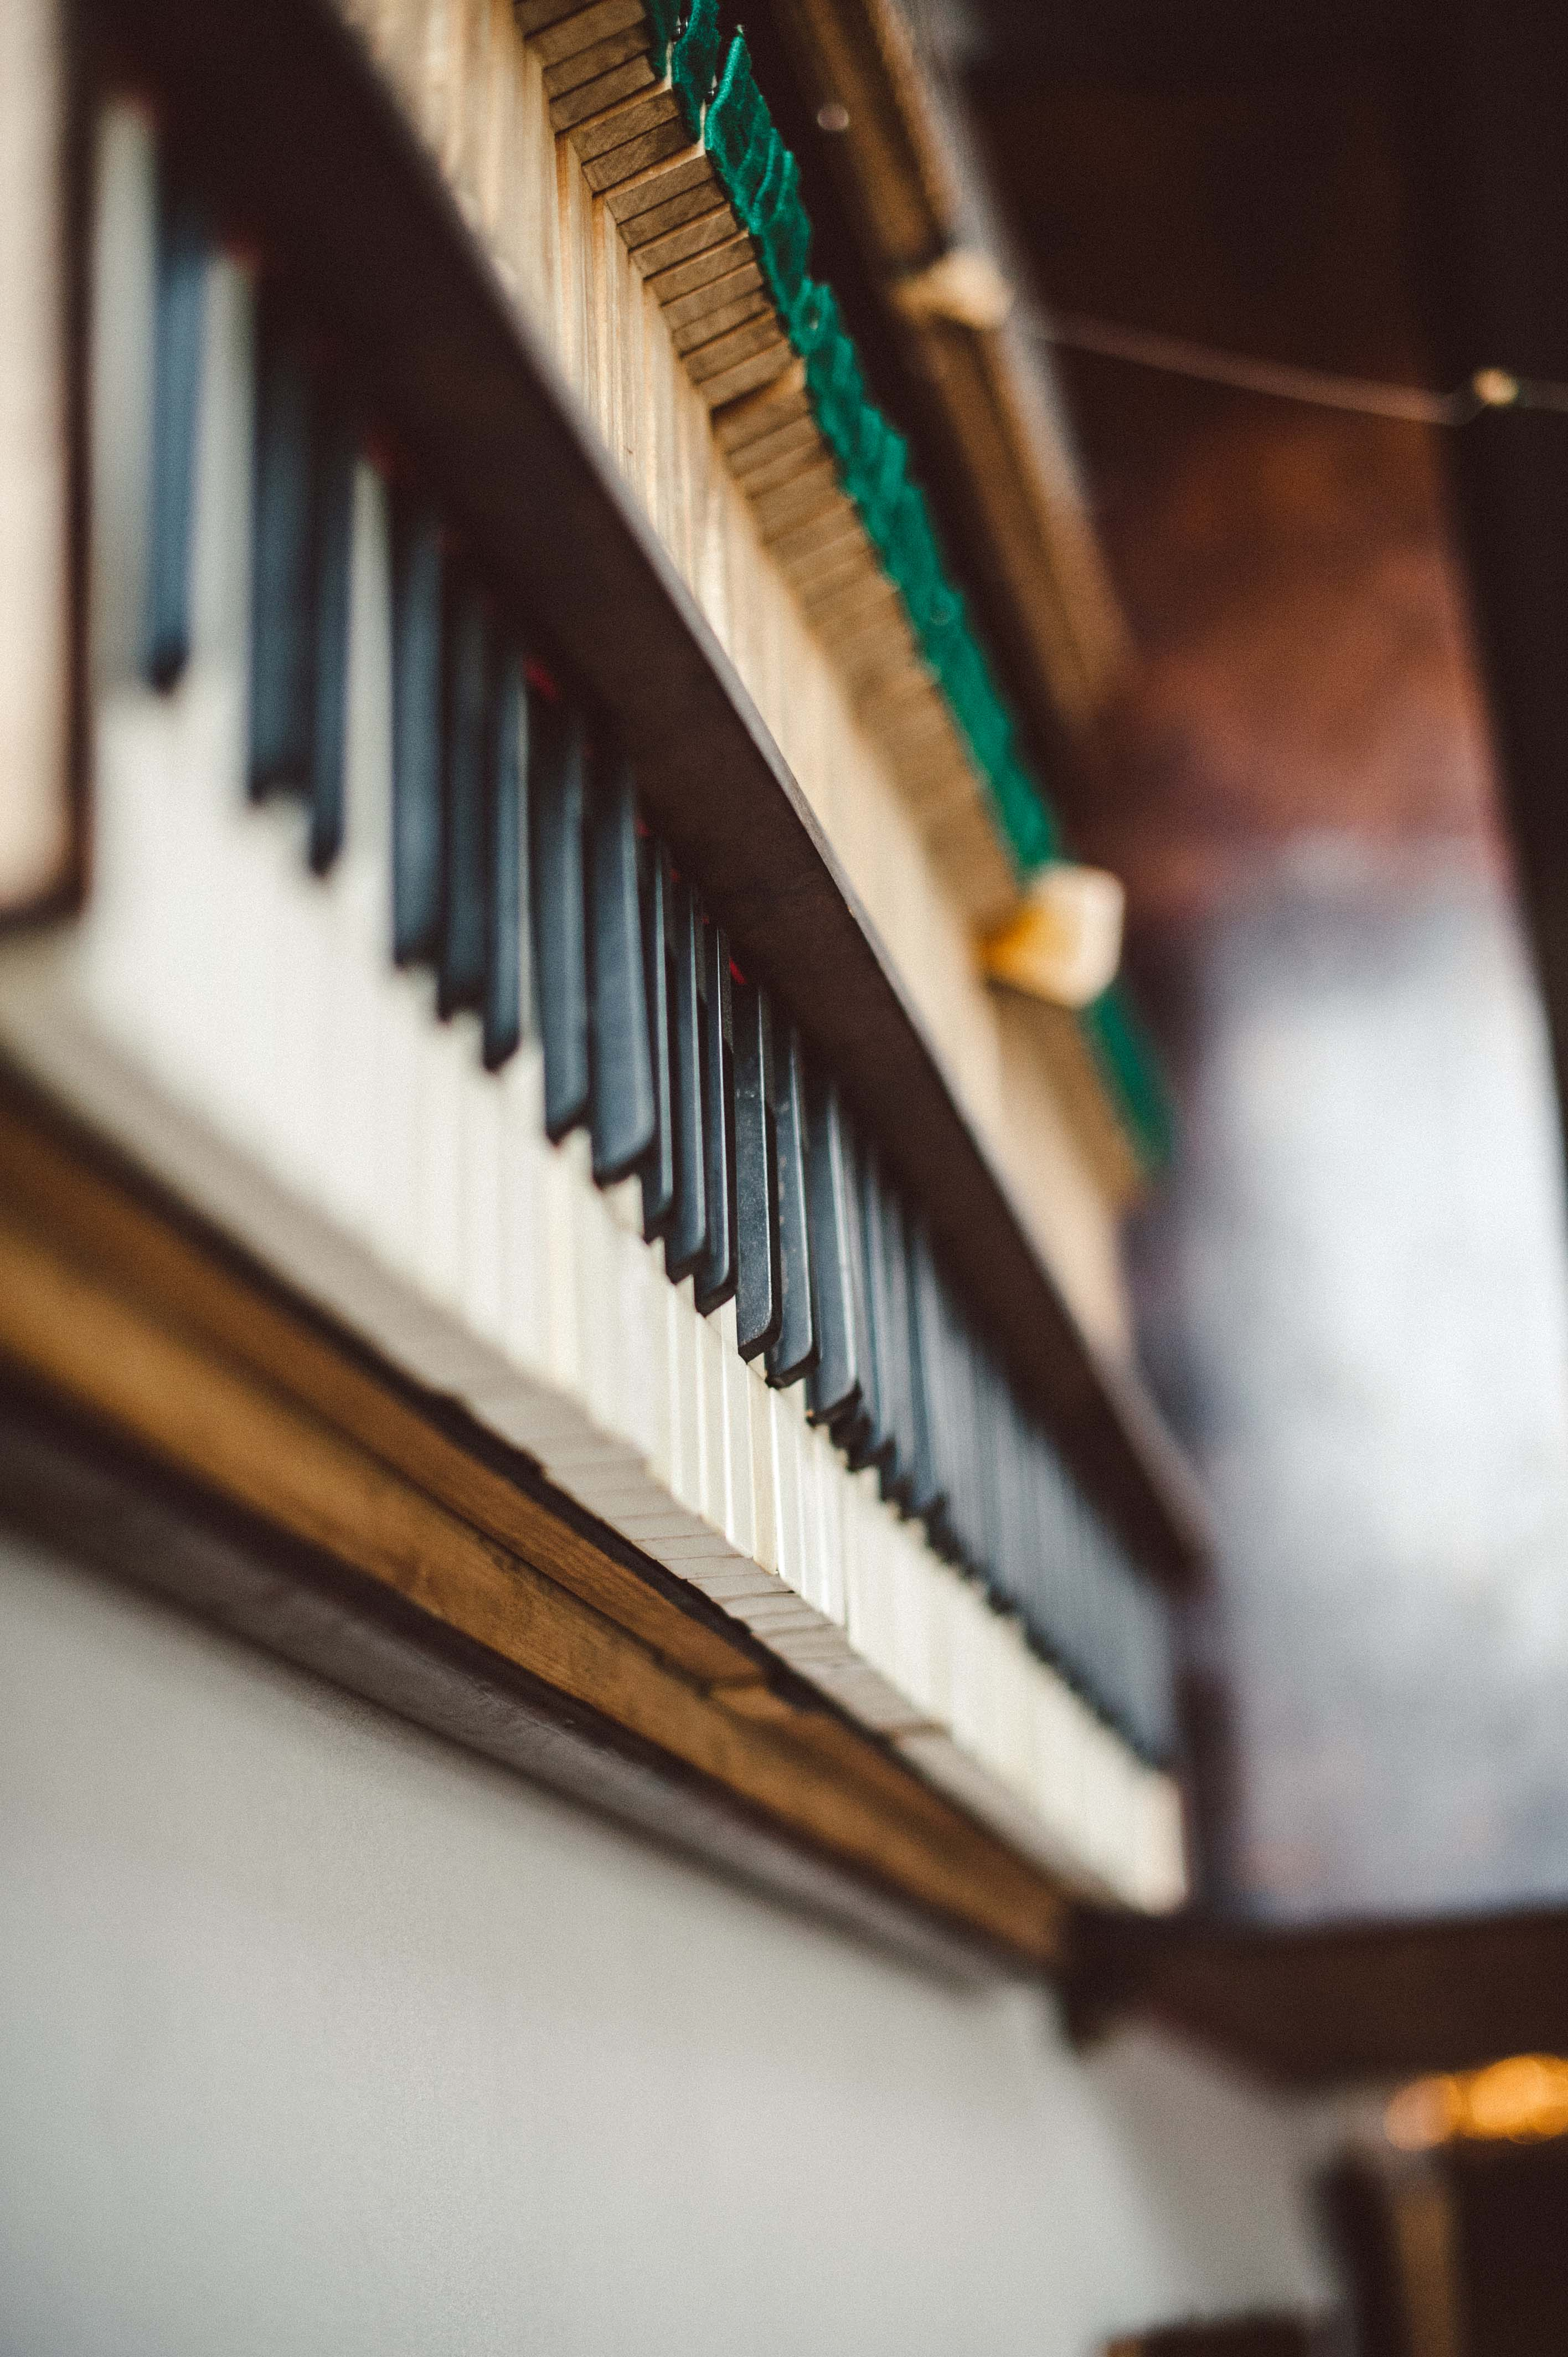 Piano Art Nic Tamlin Interiors Inside Ideas Interiors design about Everything [magnanprojects.com]